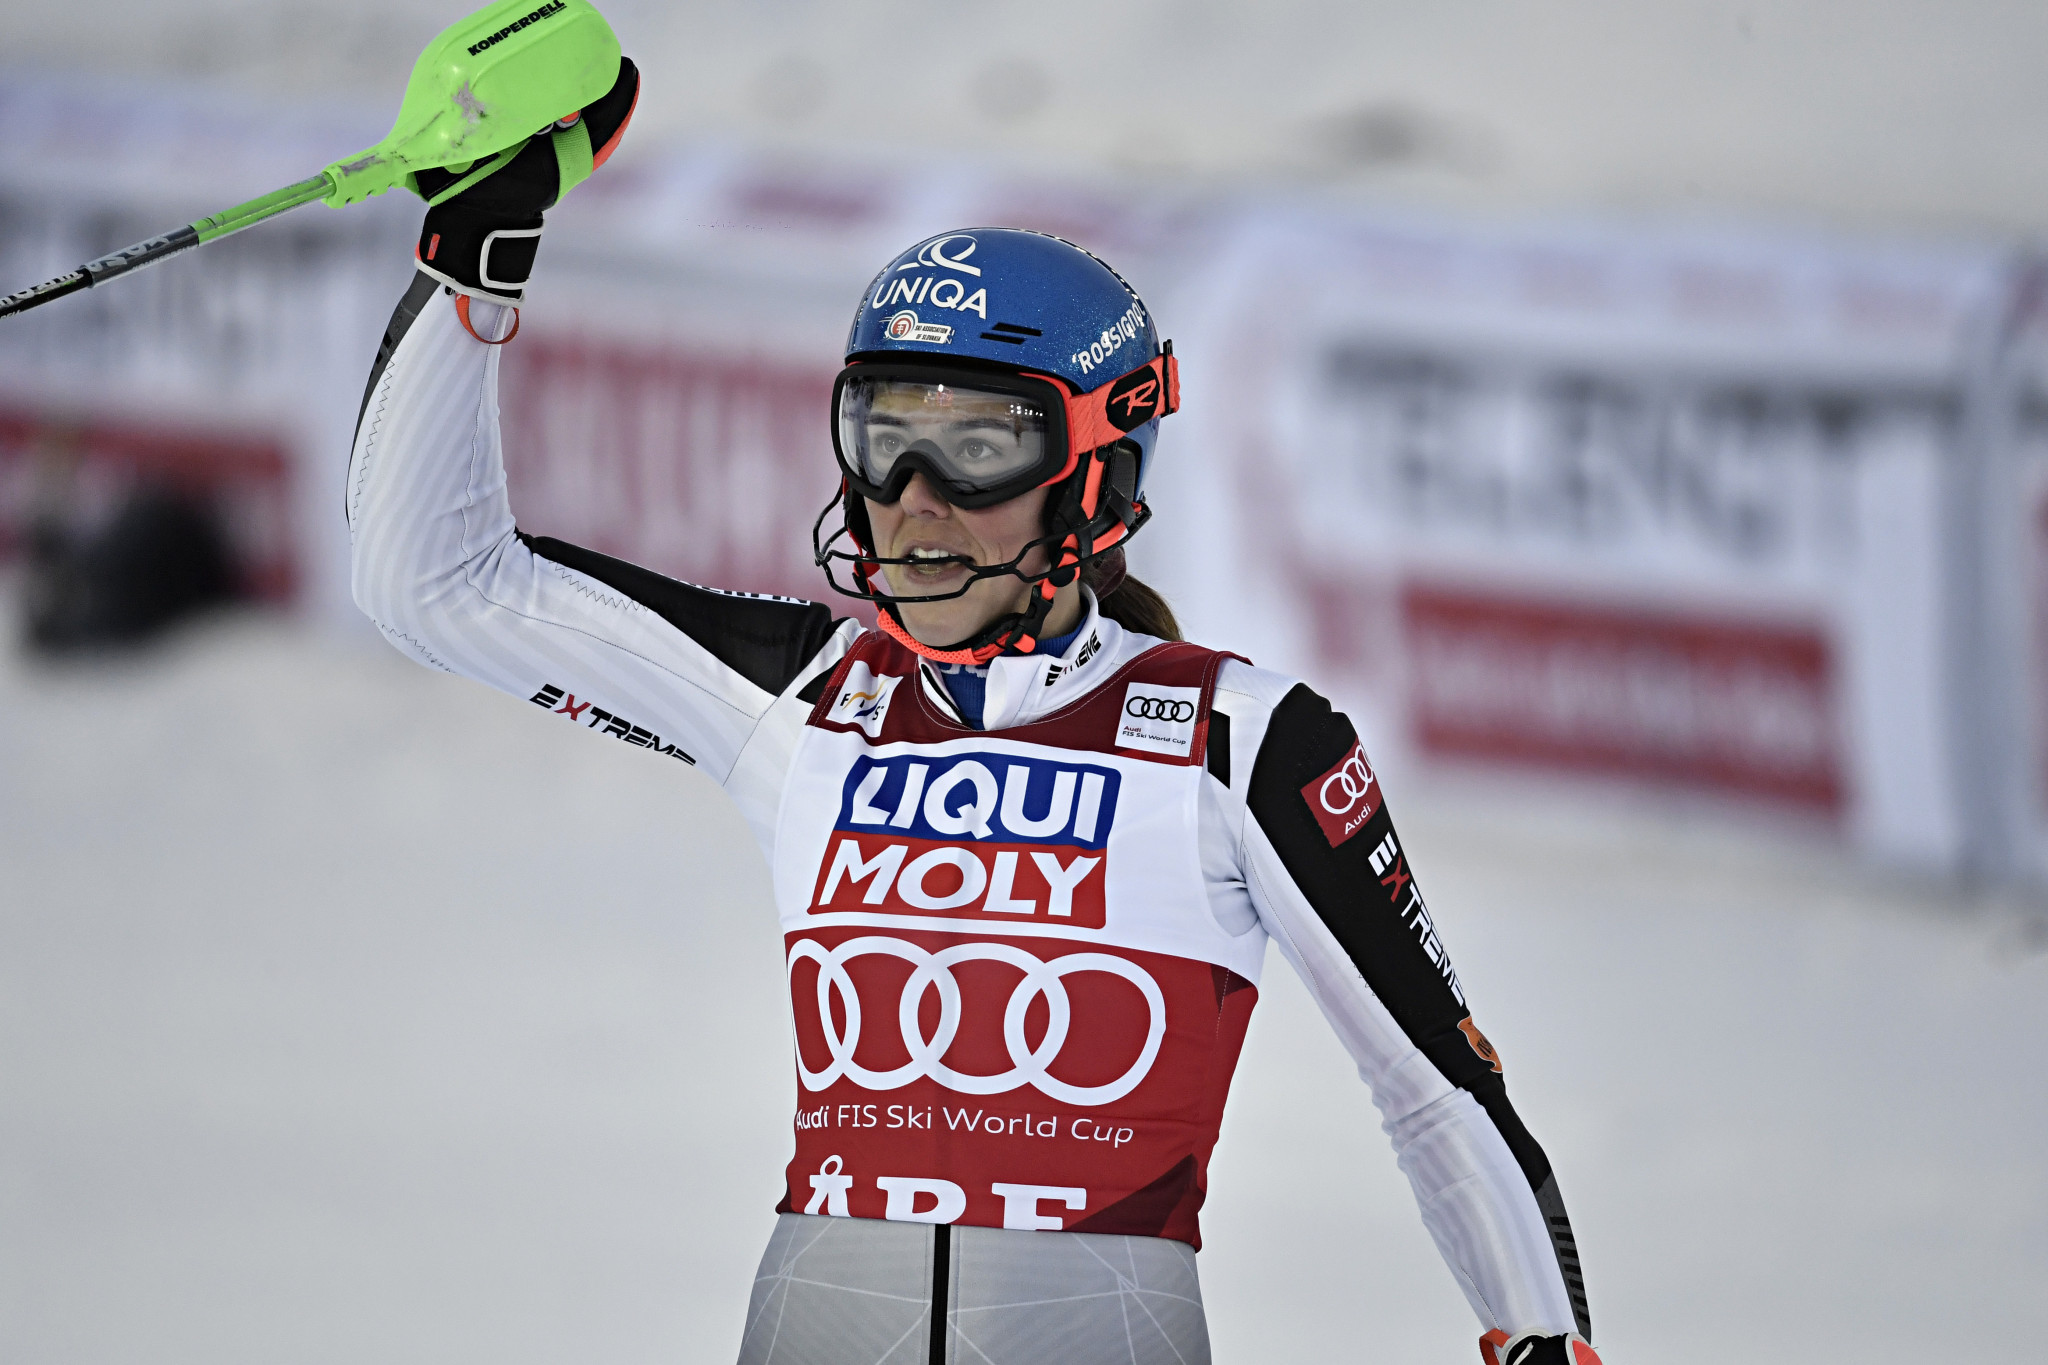 Petra Vlhová has taken the lead of the FIS Alpine Ski World Cup ©Getty Images